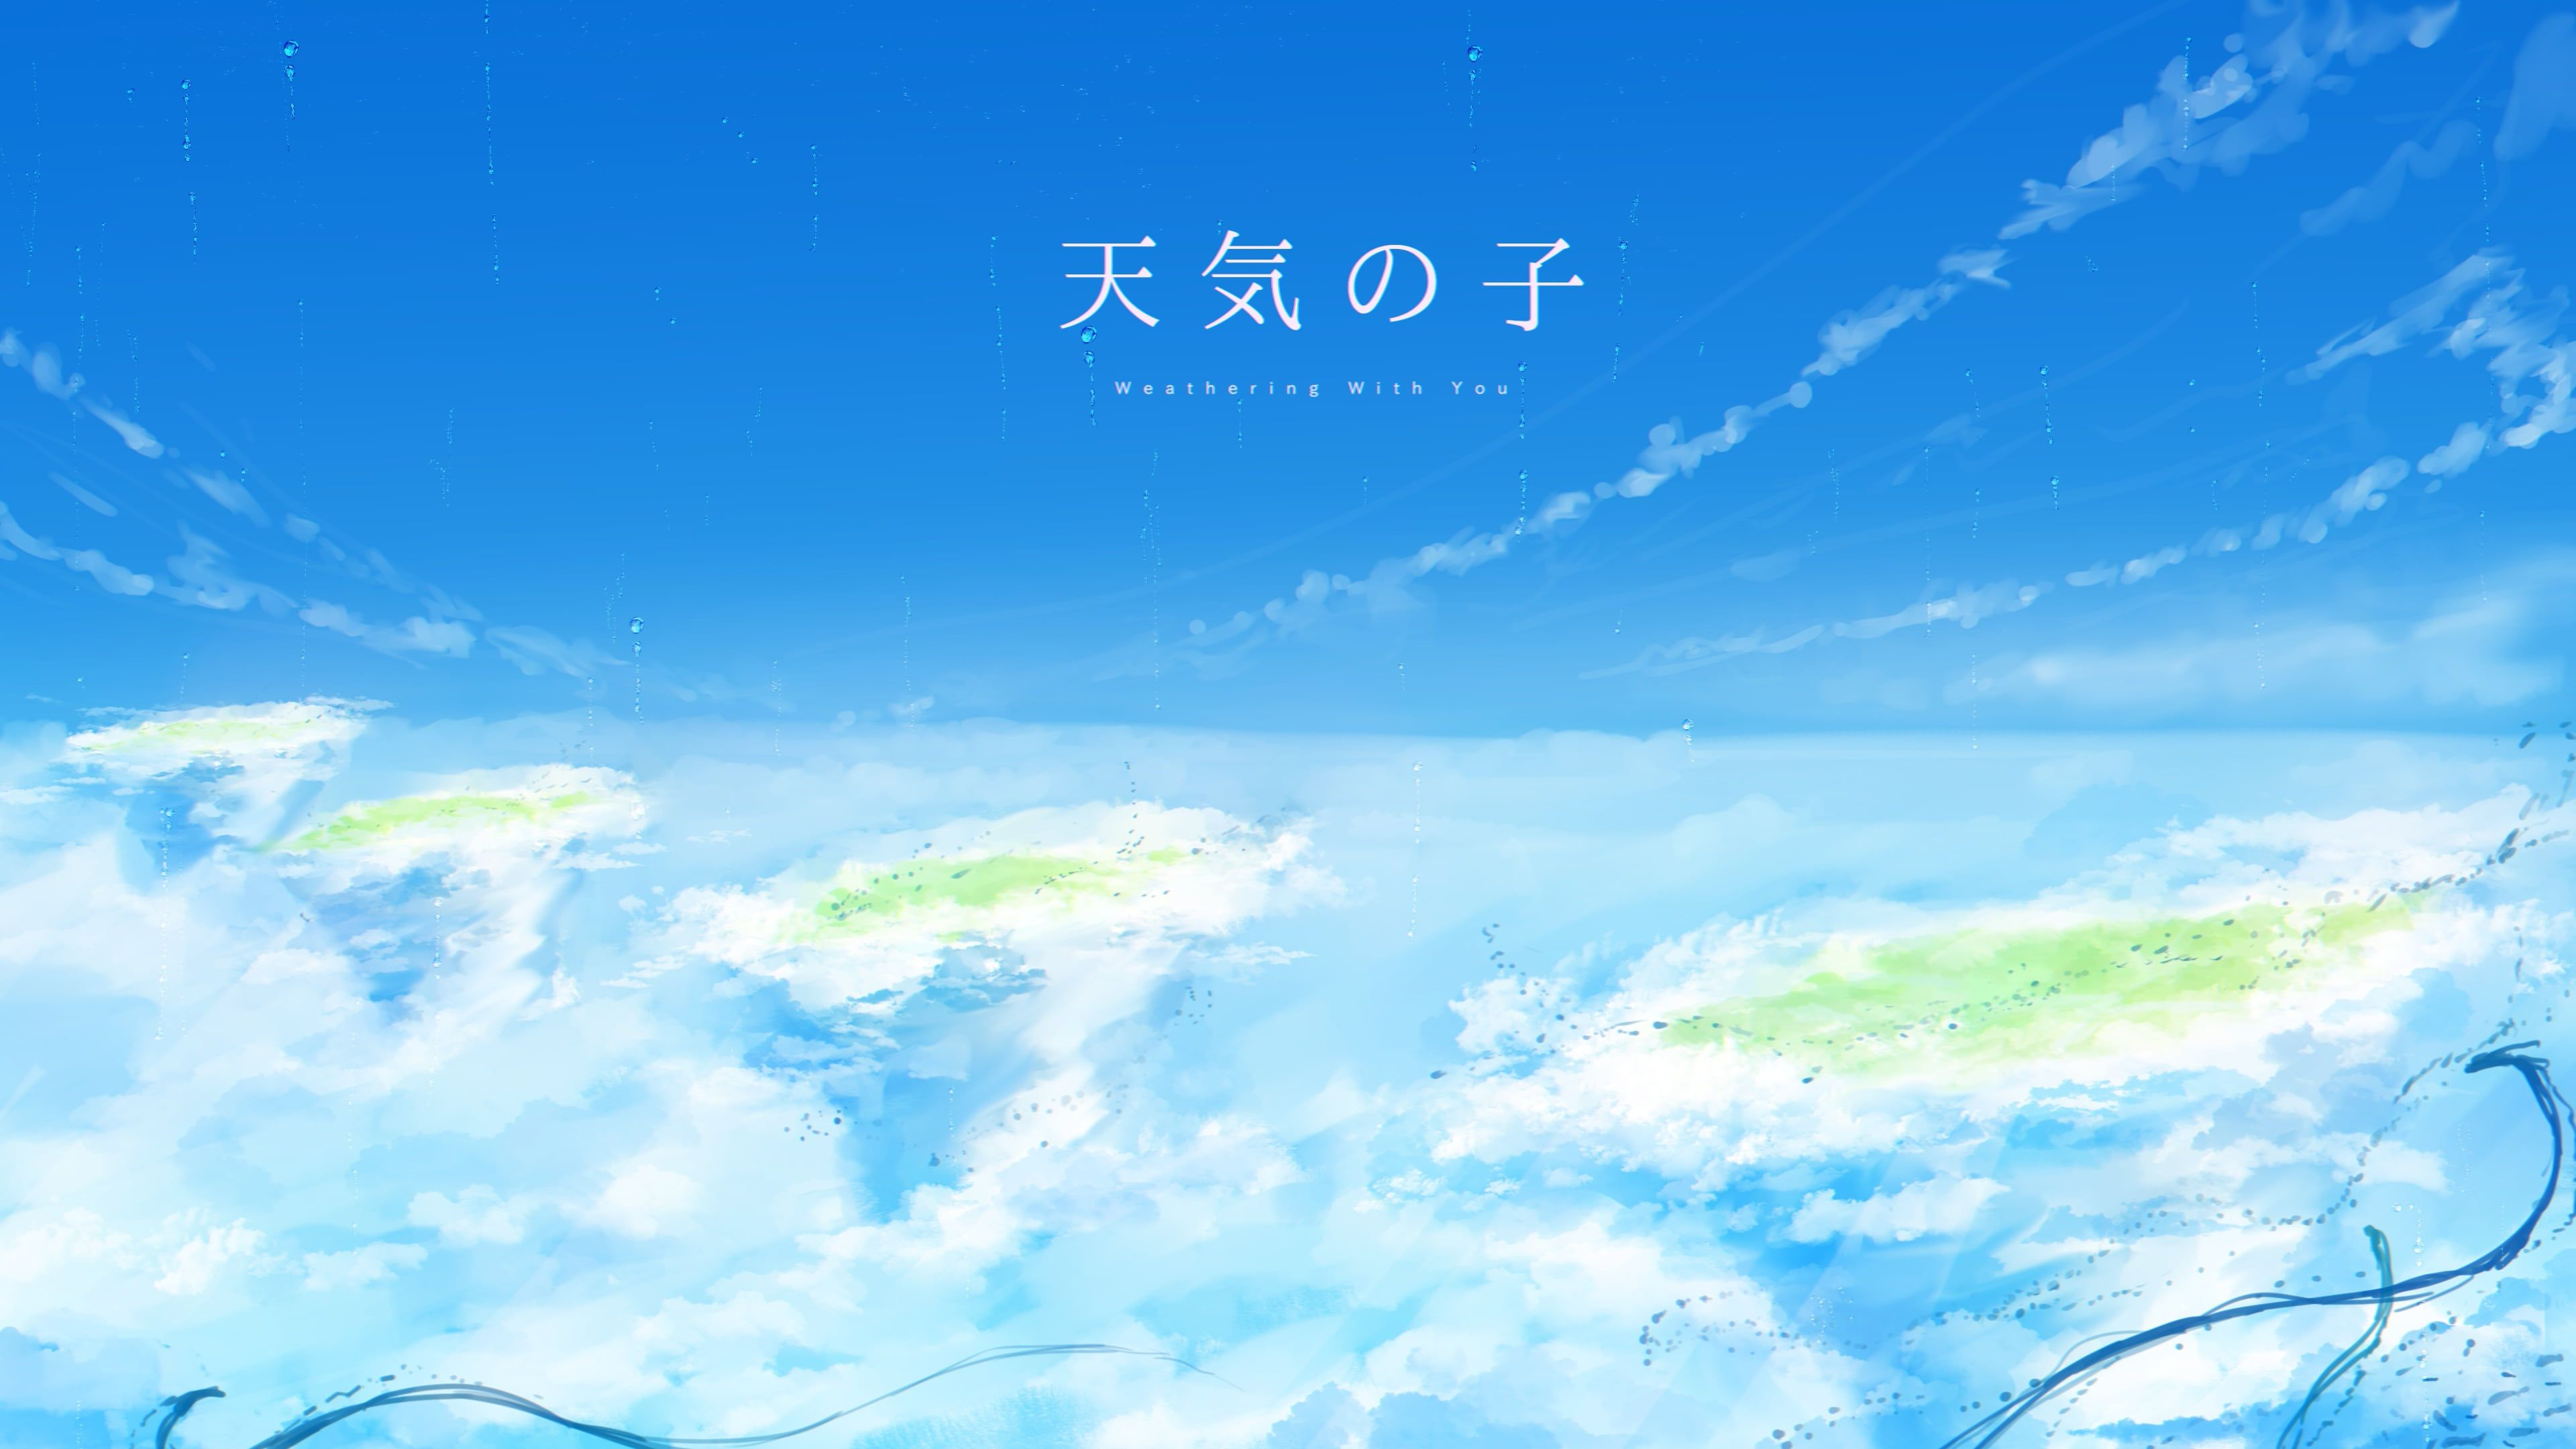 Anime Weathering With You 4K wallpaper hdwallpaper